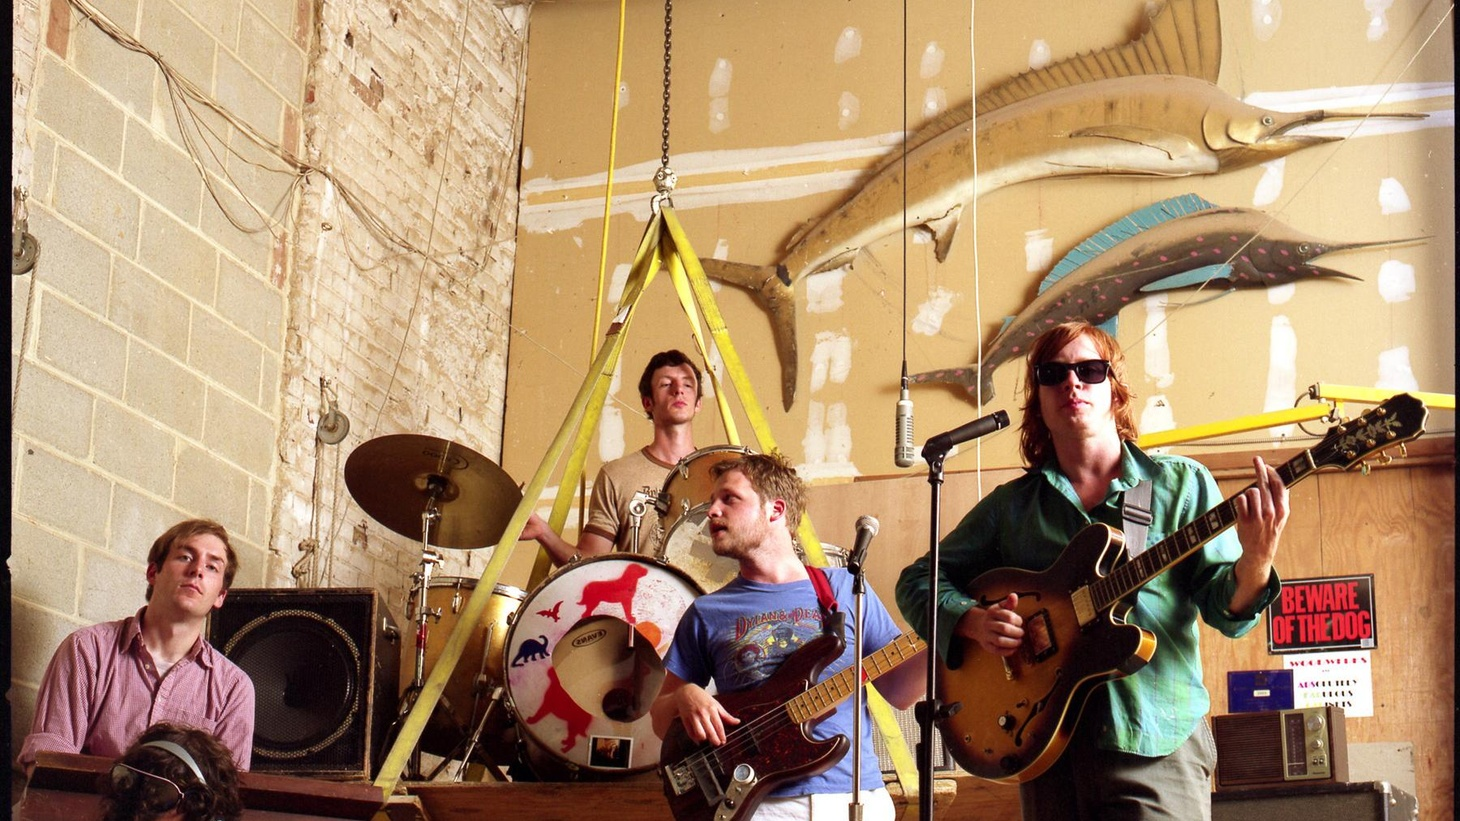 Dr. Dog's exuberant vocal harmonies recall bands of the '60's, yet their overall sound is entirely fresh and invigorating, drawing from Americana, psychedelic pop and more. The Philly-based band have been touring behind their new album for months and we'll hear them at the top of their game when they join Morning Becomes Eclectic at 11:15am.